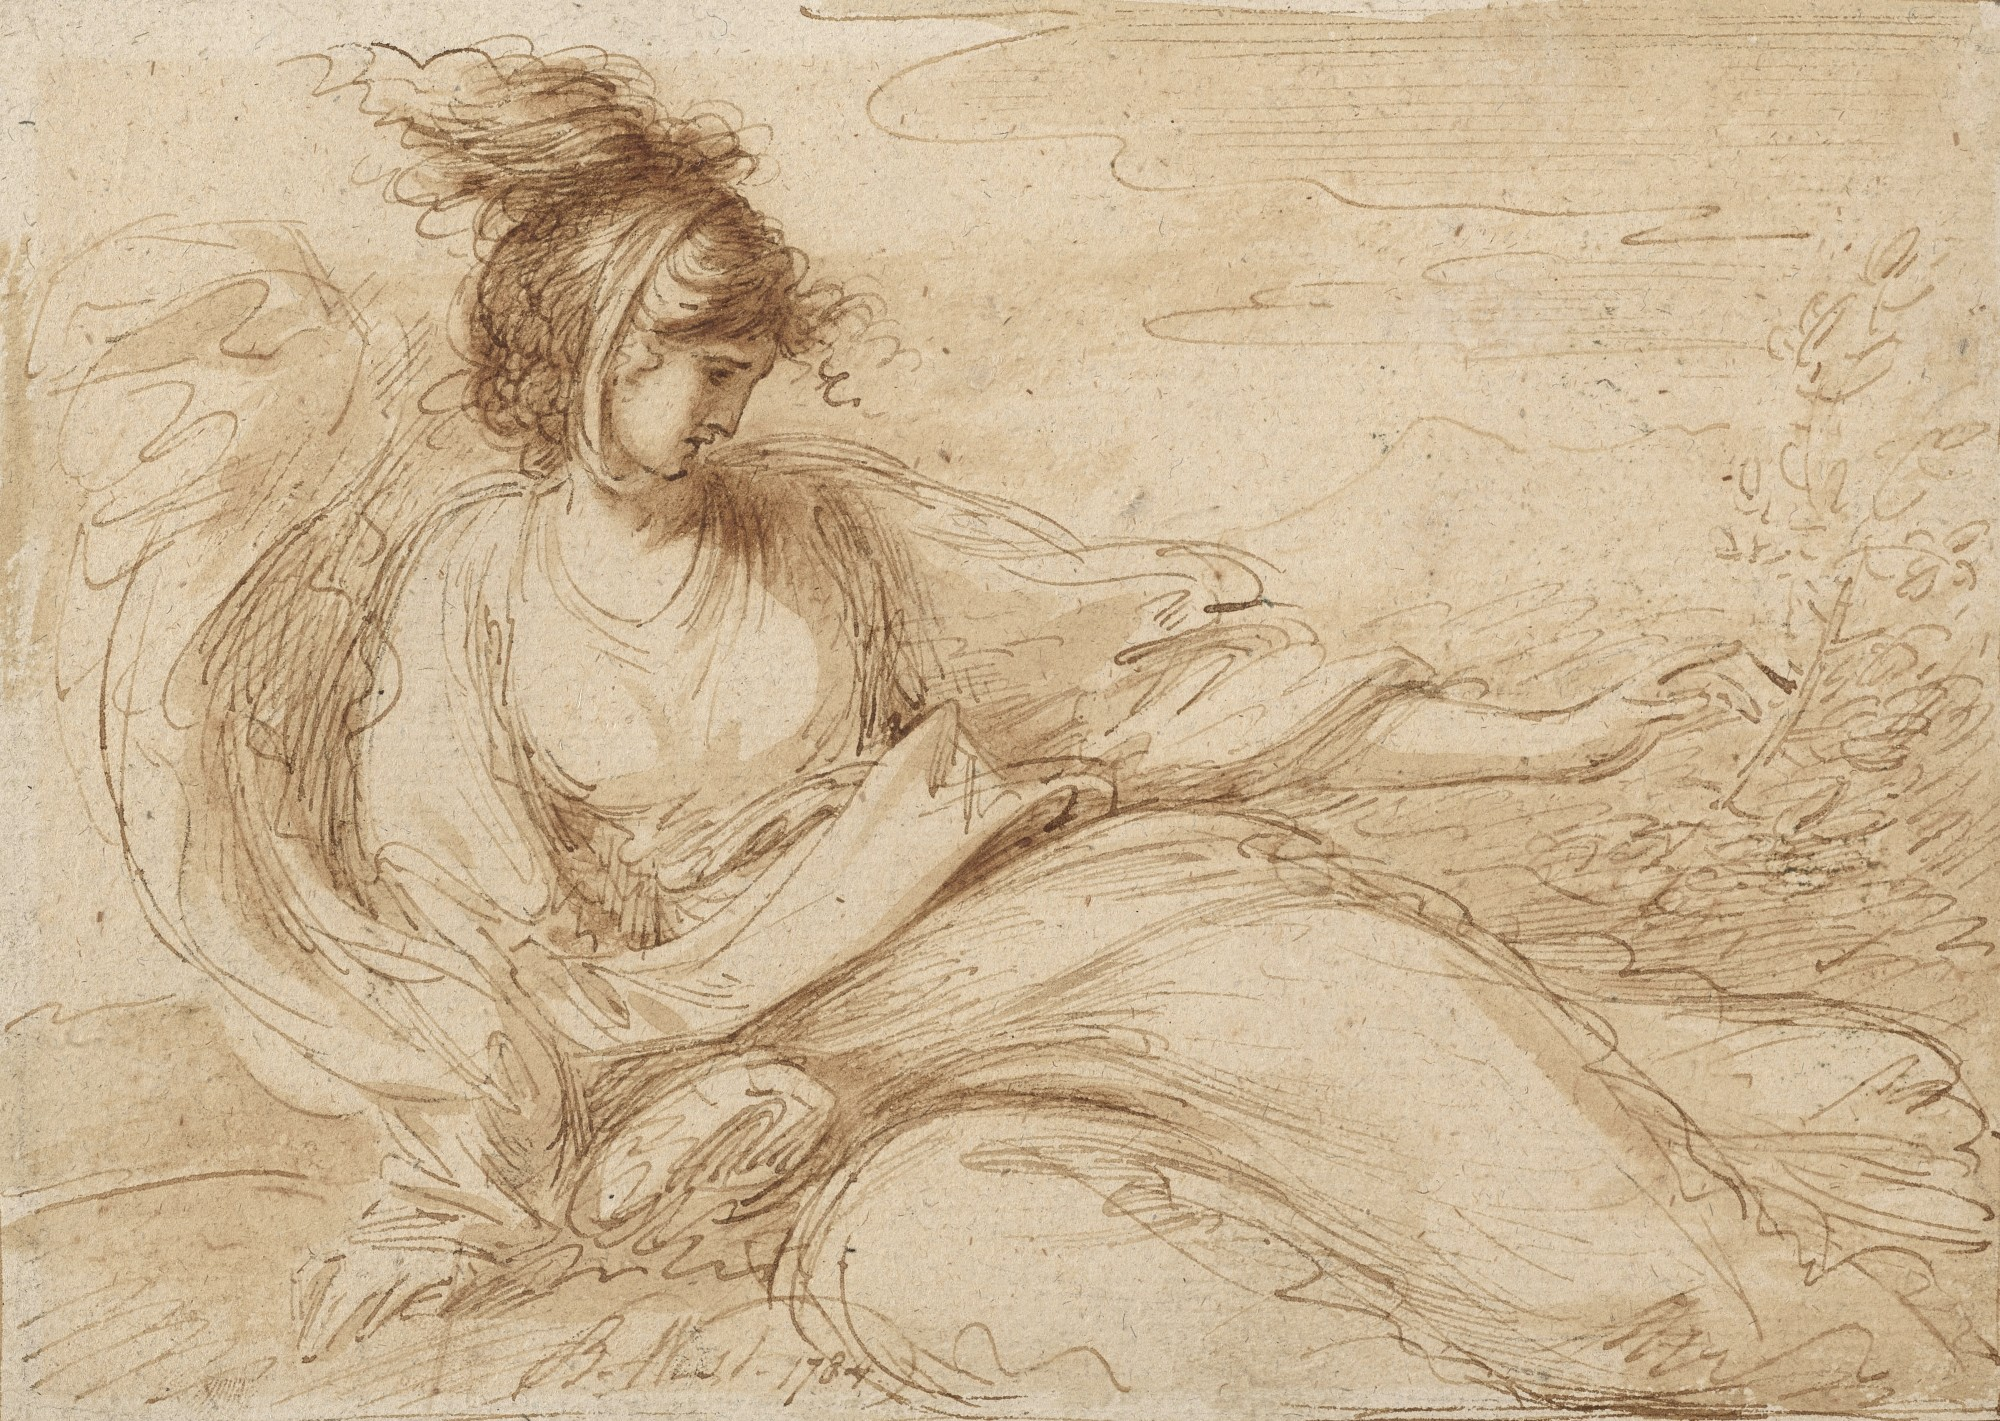 BENJAMIN WEST P R A Touch A drawing from the series The Five Senses